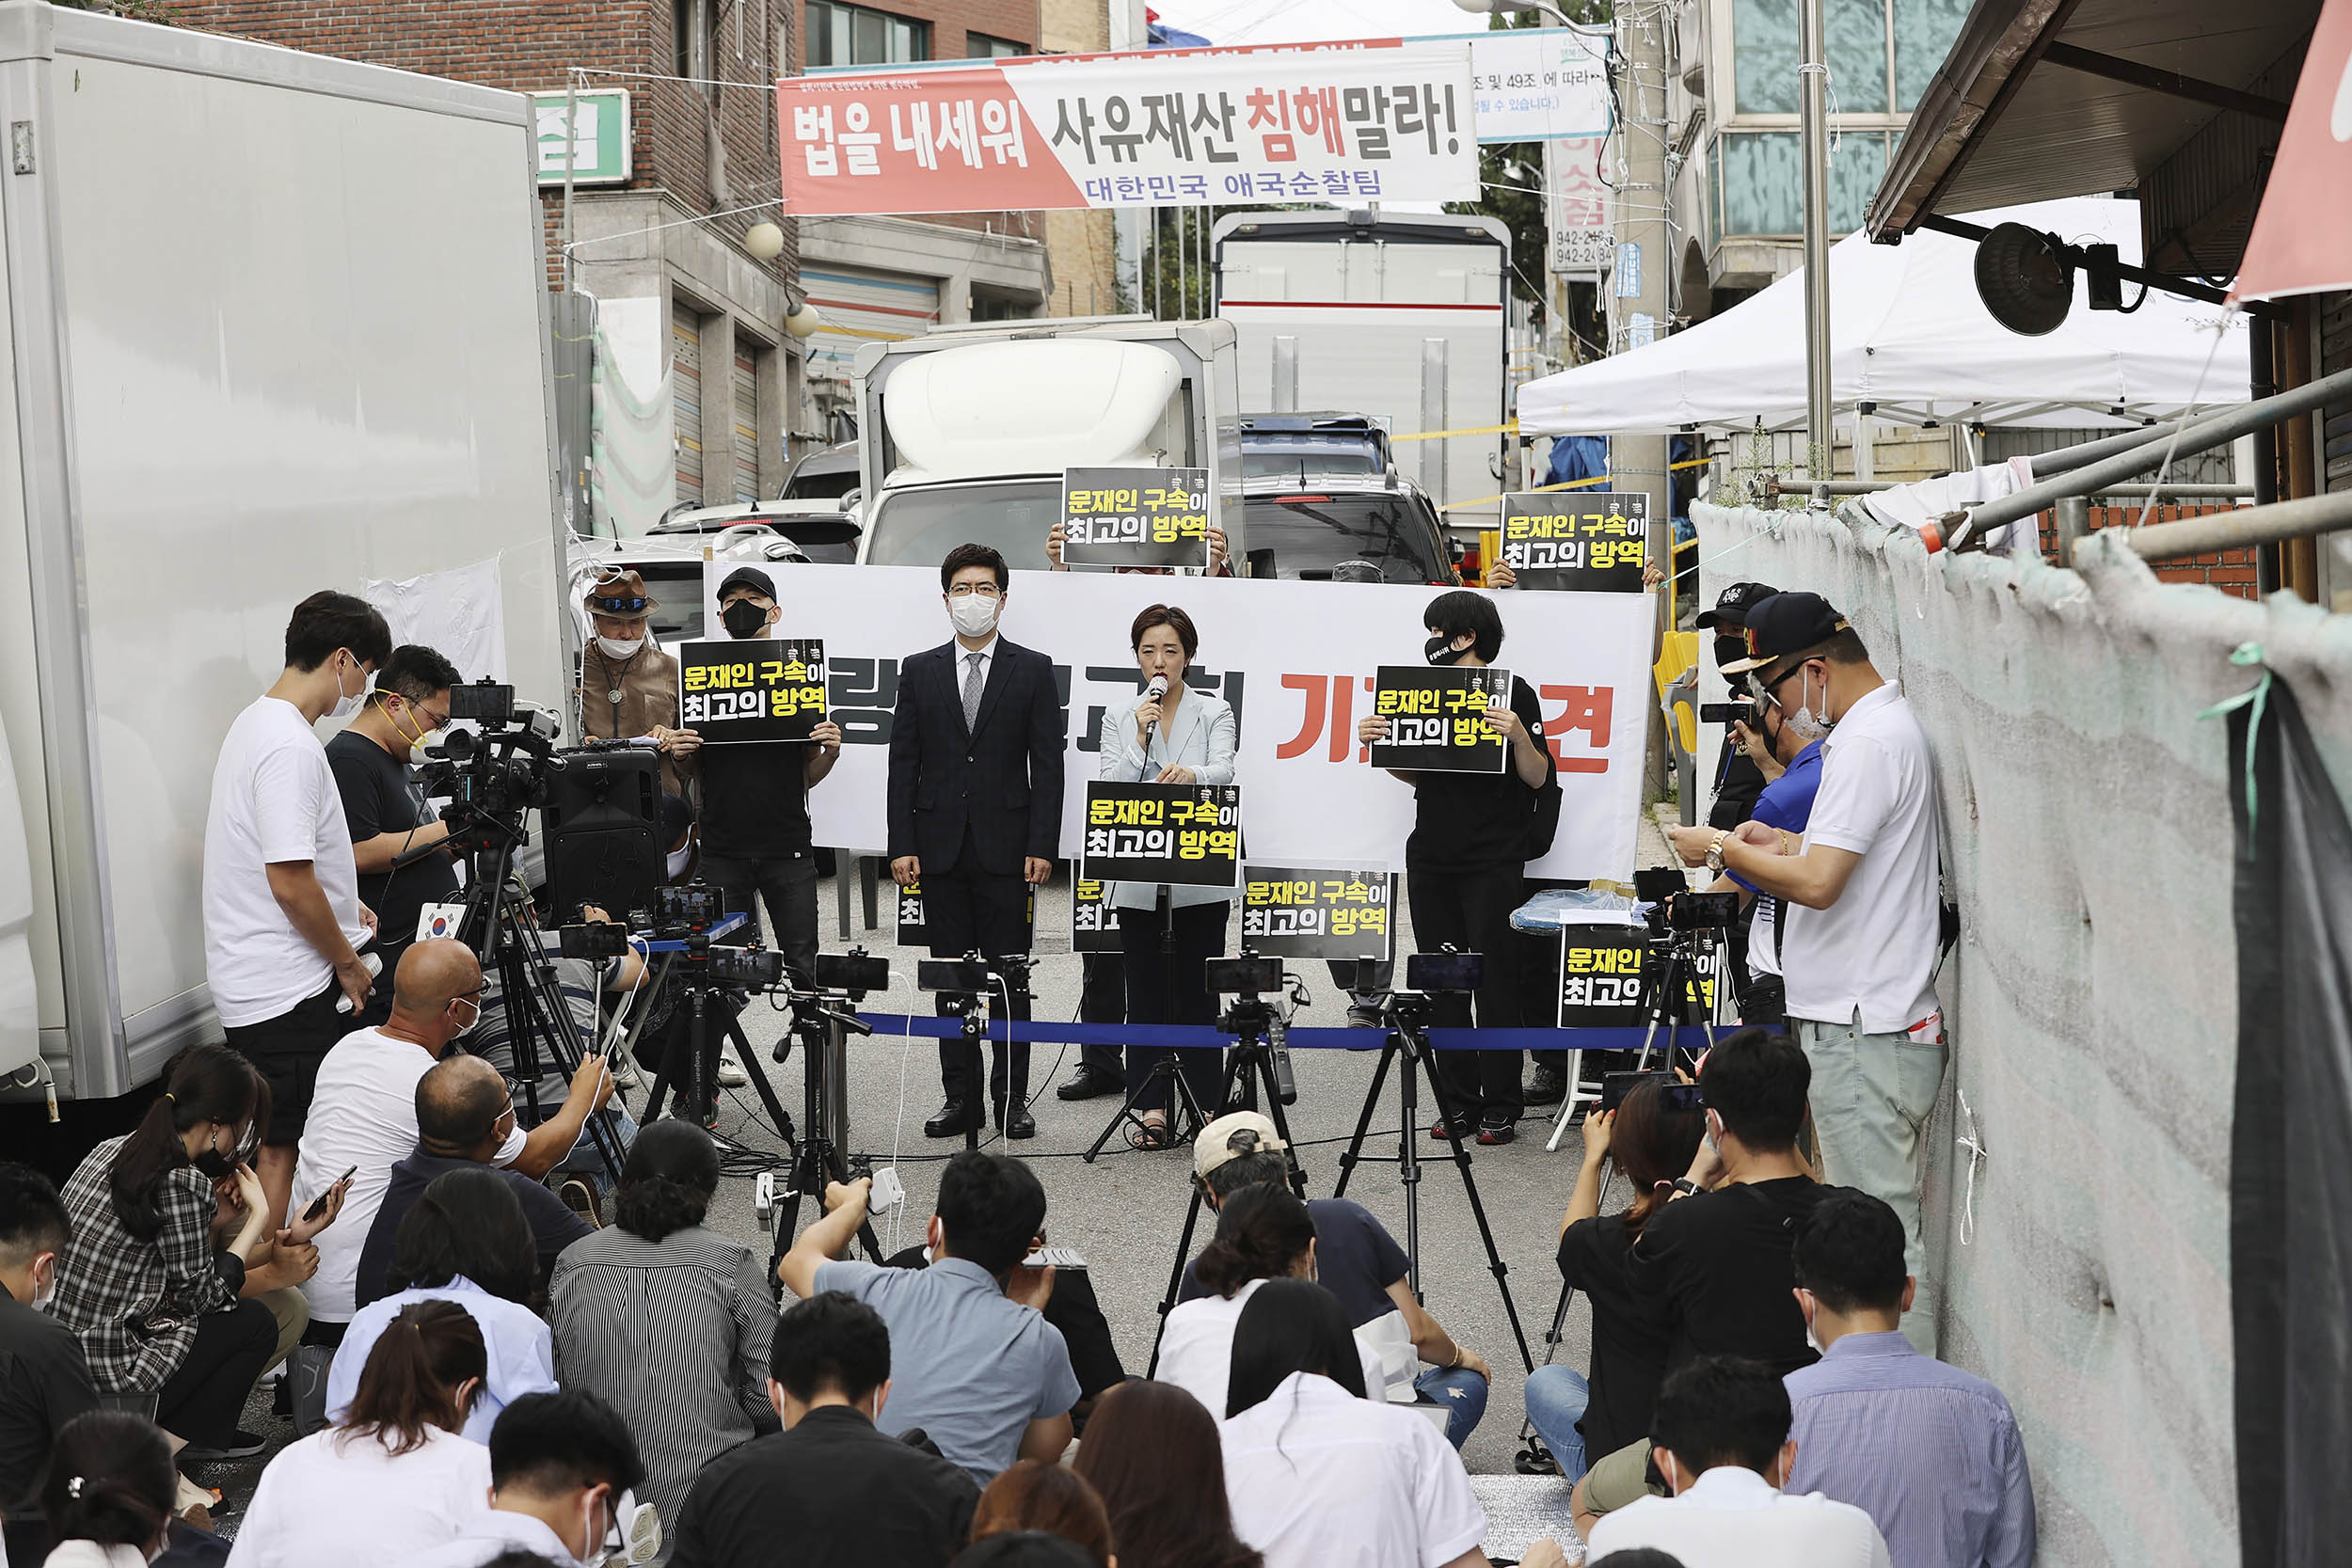 Sarang-jeil Church pastor Jun Kwang-hun's lawyer, Kang Yeon-jae, top center, speaks during a news conference near the church in Seoul, South Korea, on Monday, August 17.